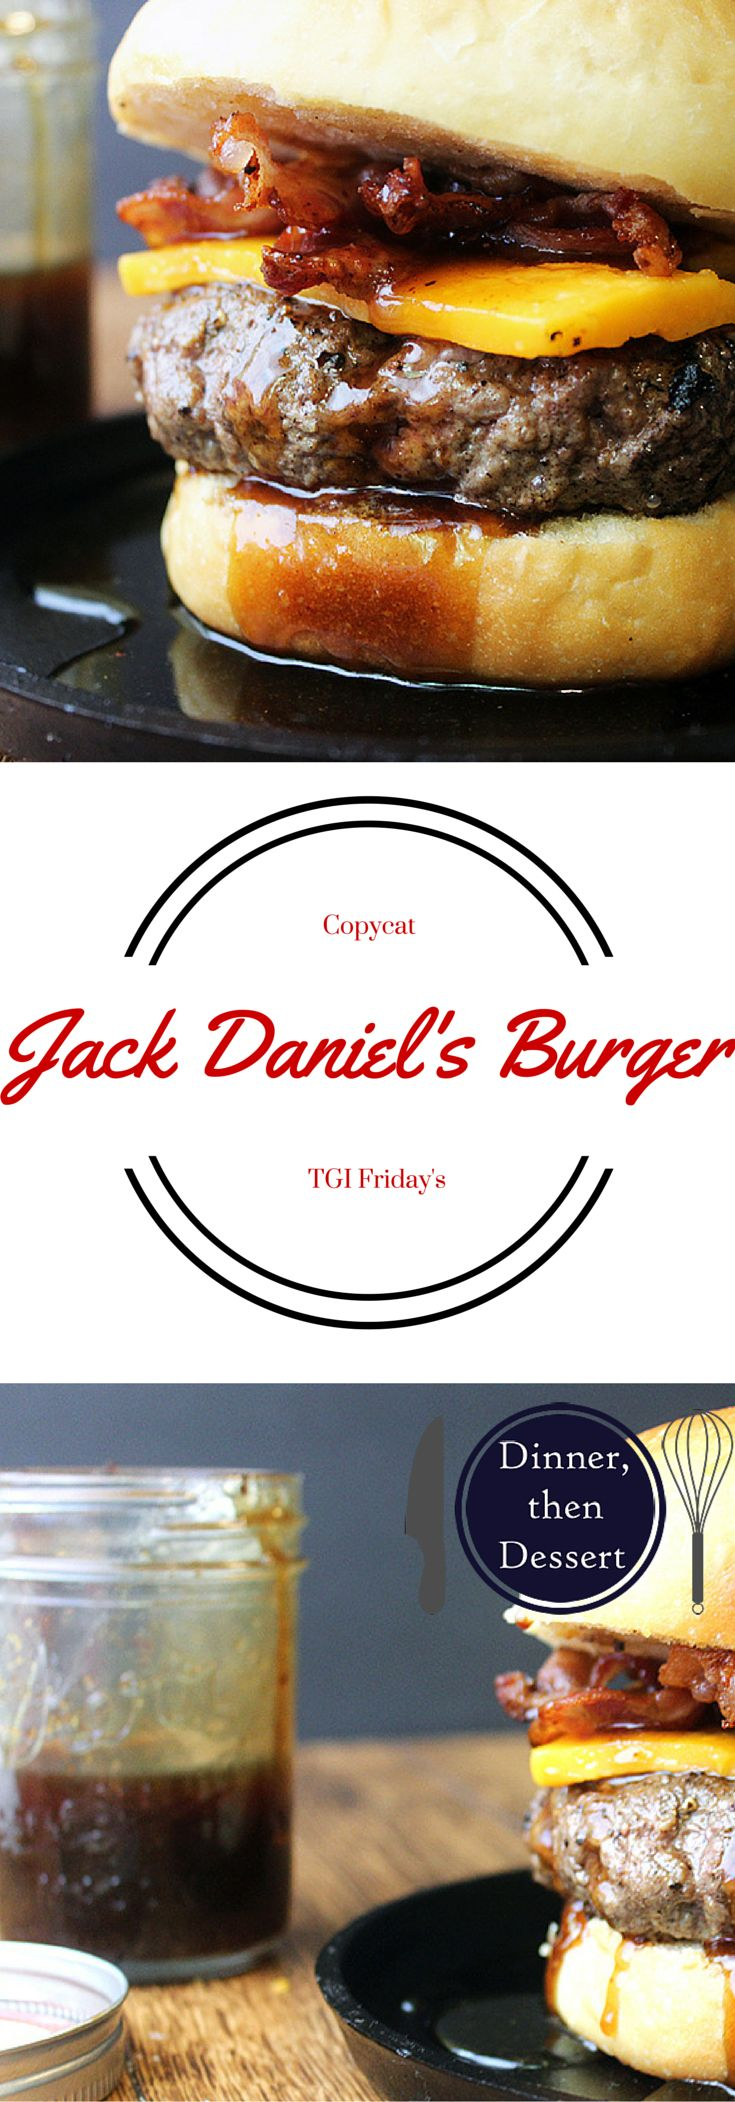 Jack Daniel's sticky, sweet & spicy sauce on a delicious bacon cheeseburger. Can it get any better?